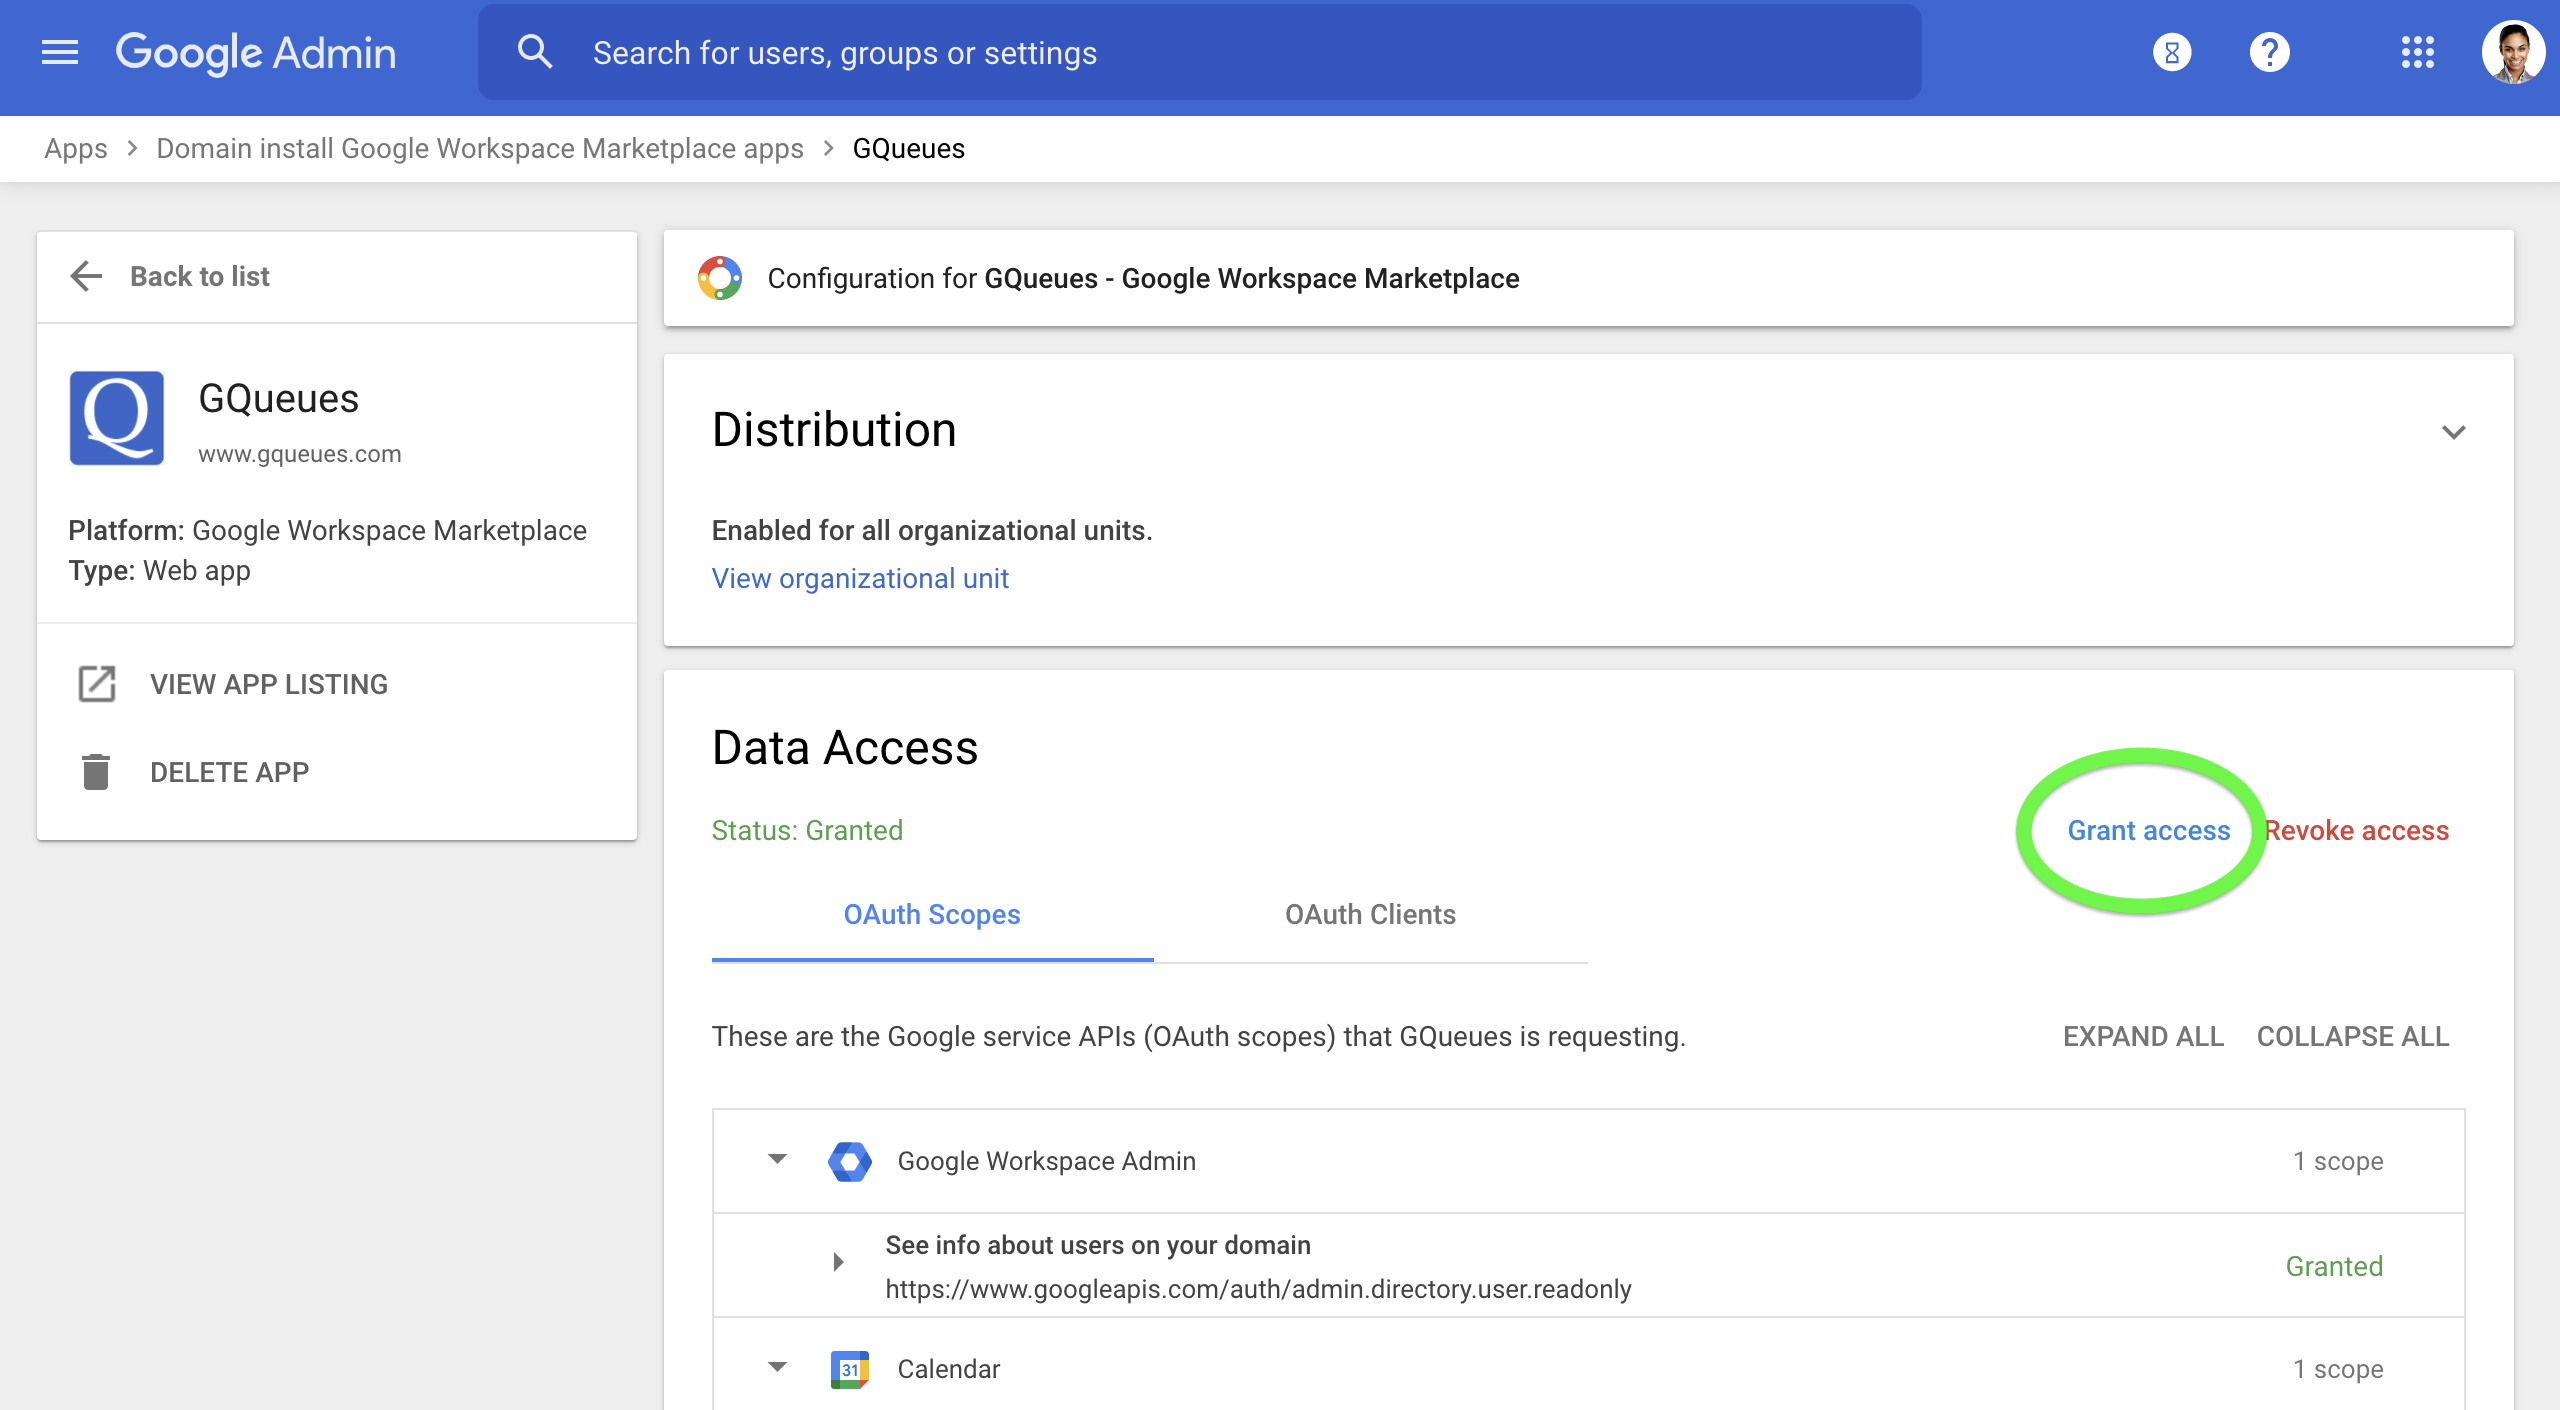 Select Grant access to grant data access for all users on your Google Workspace domain